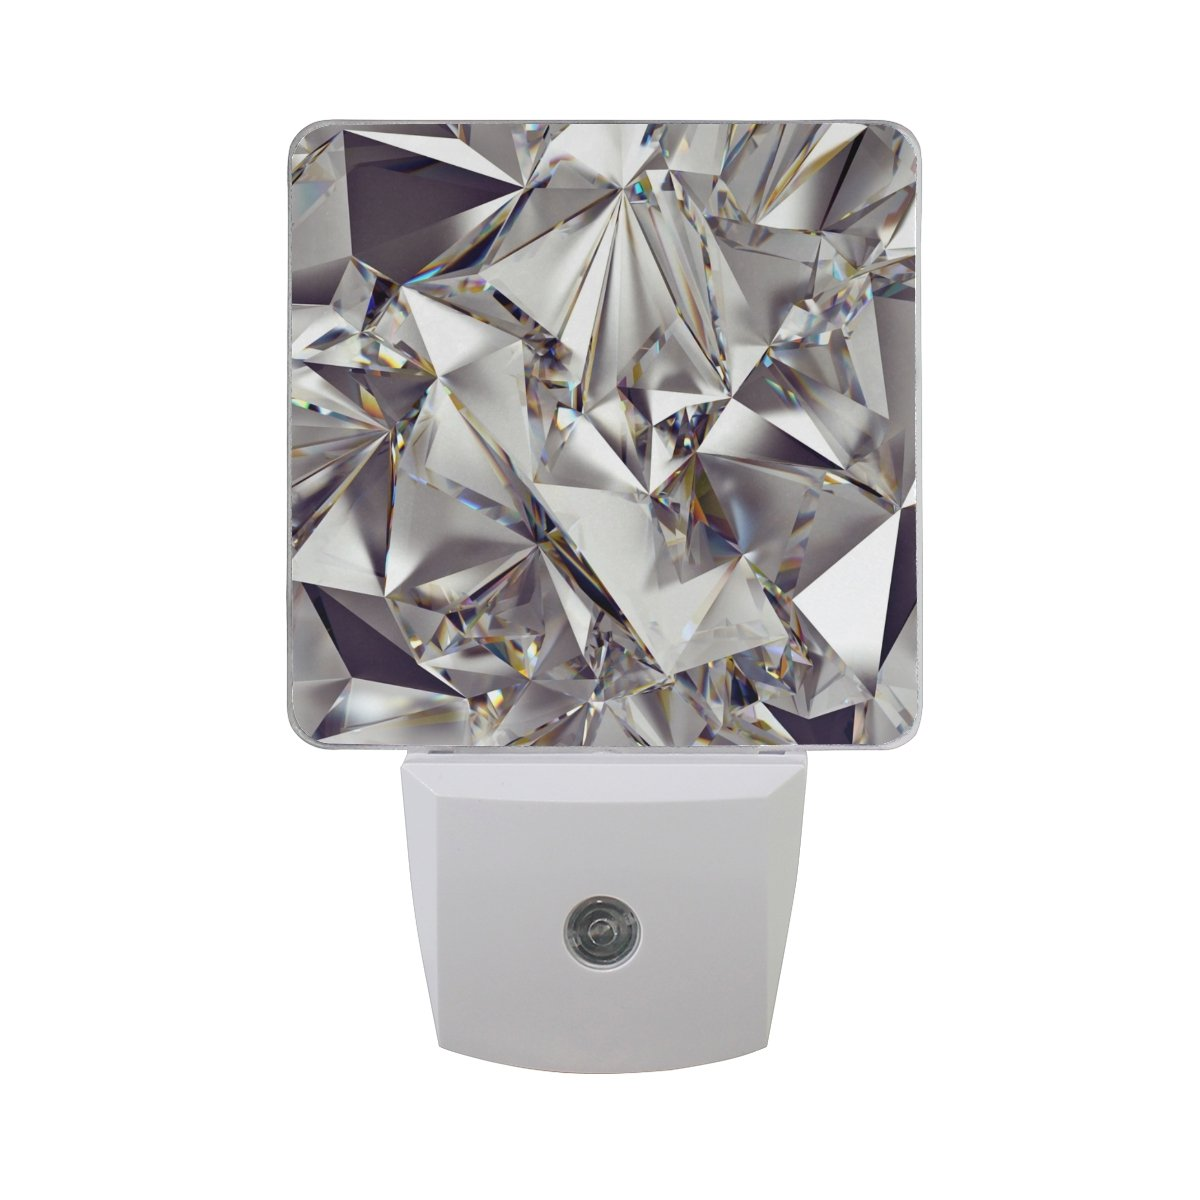 Naanle Set of 2 Glitter 3D Abstract Diamond Crystal Clear Texture Auto Sensor LED Dusk to Dawn Night Light Plug in Indoor for Adults